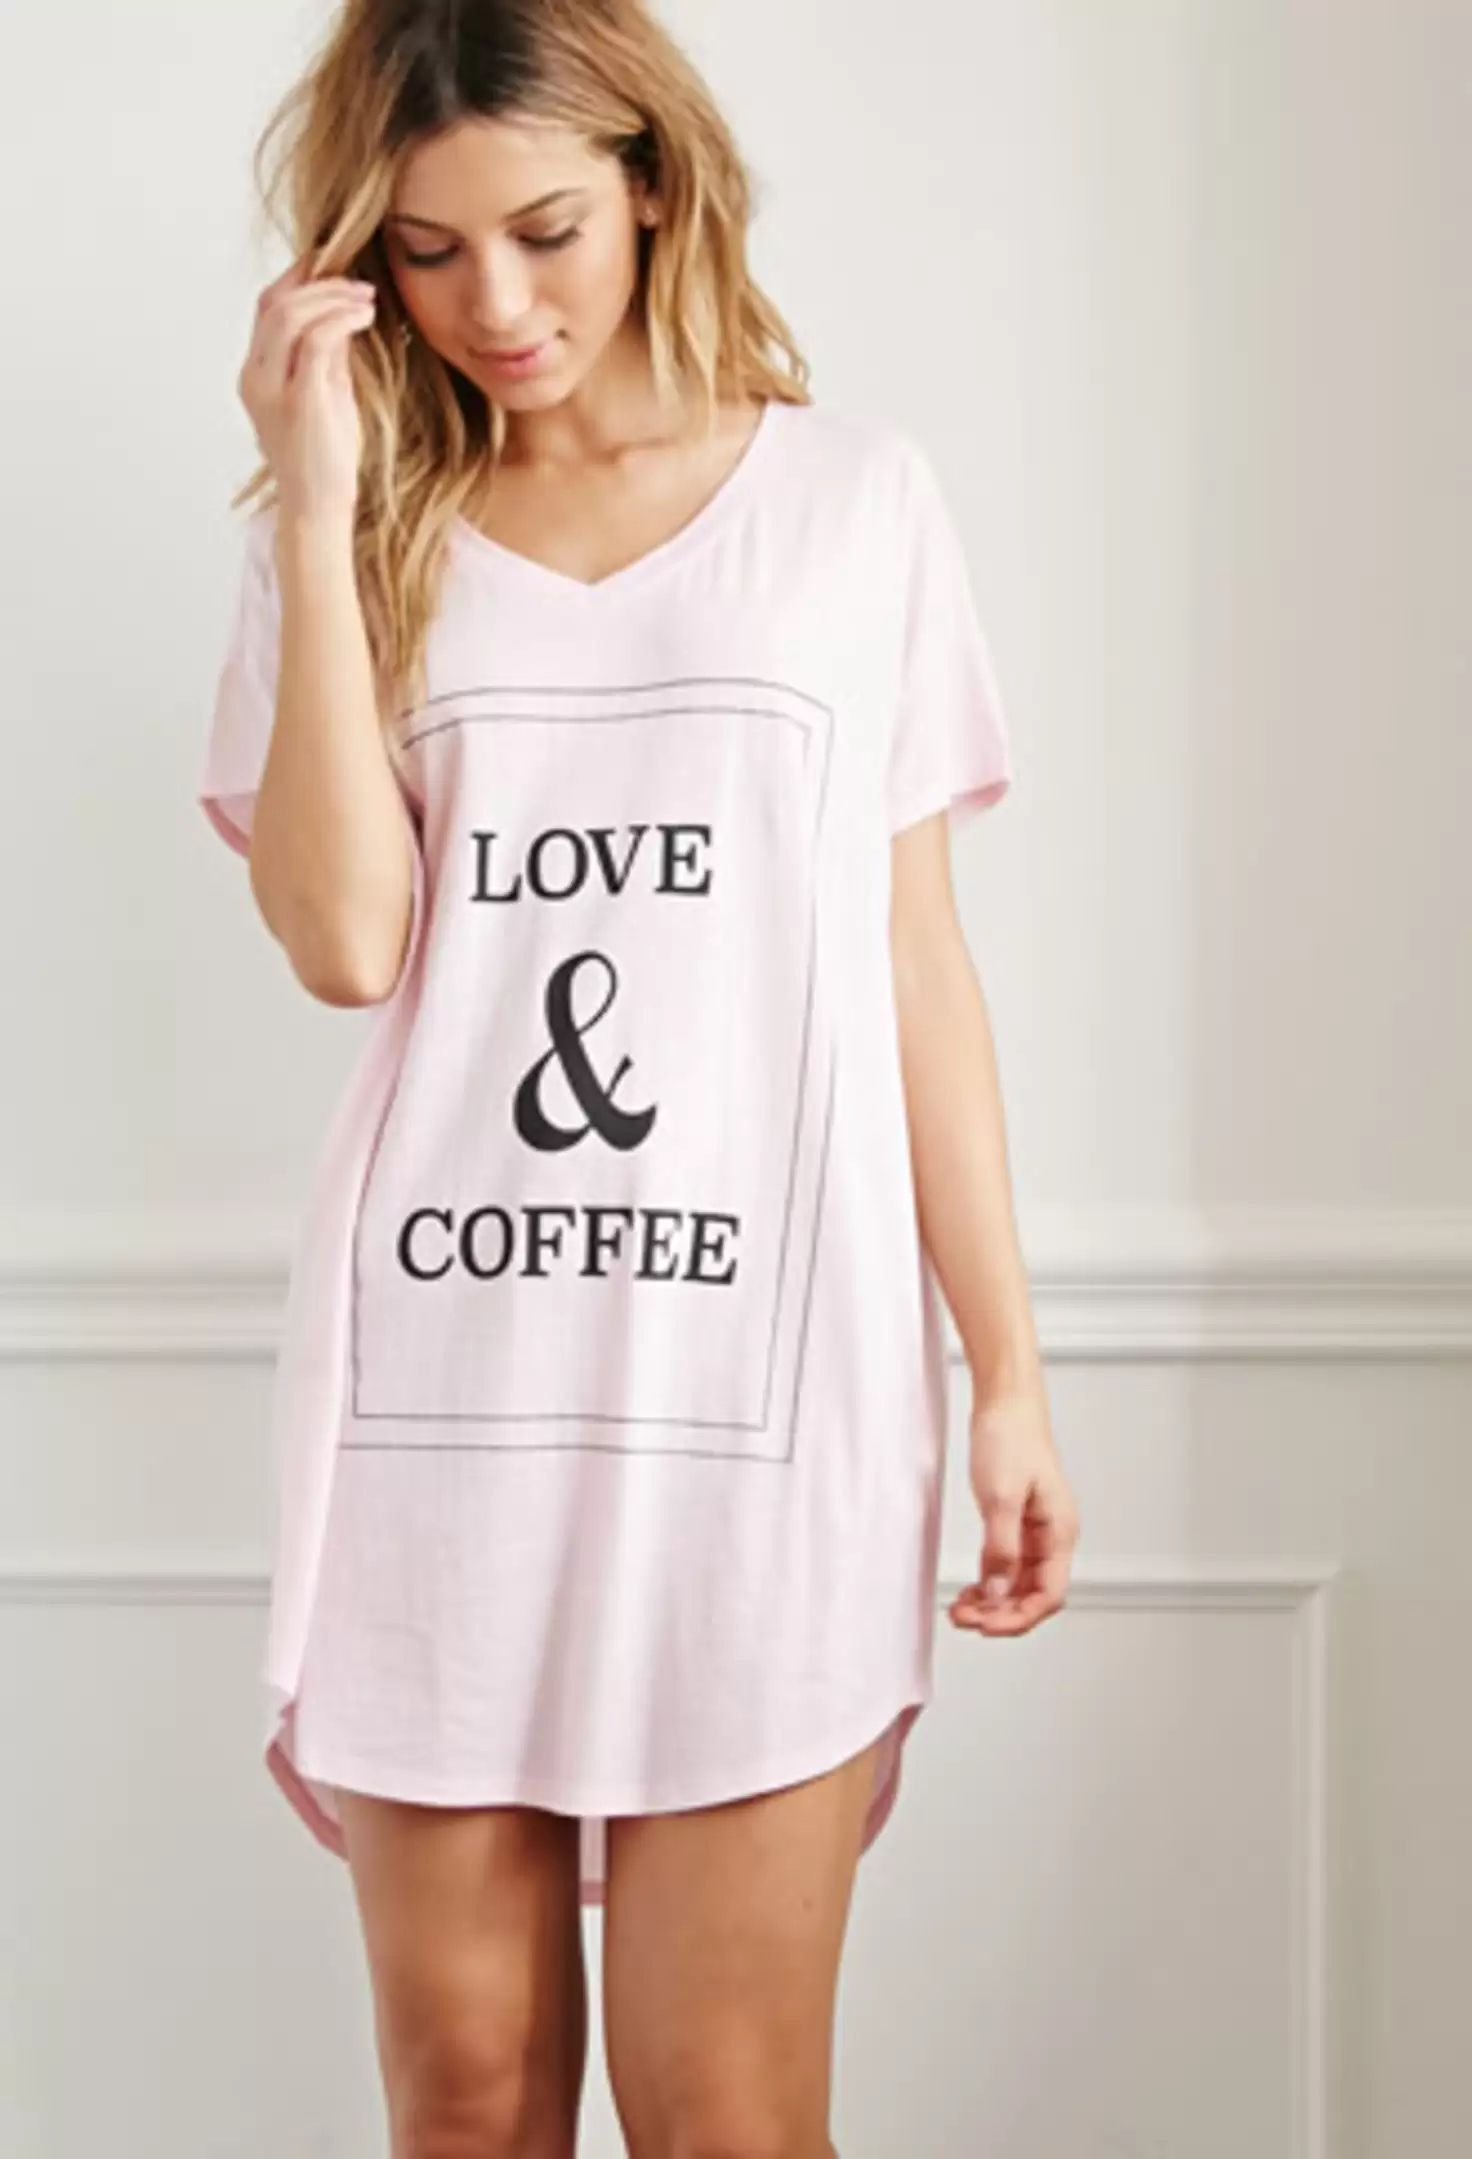 Pin by Assil bieber on À acheter Clothes, Pajamas women